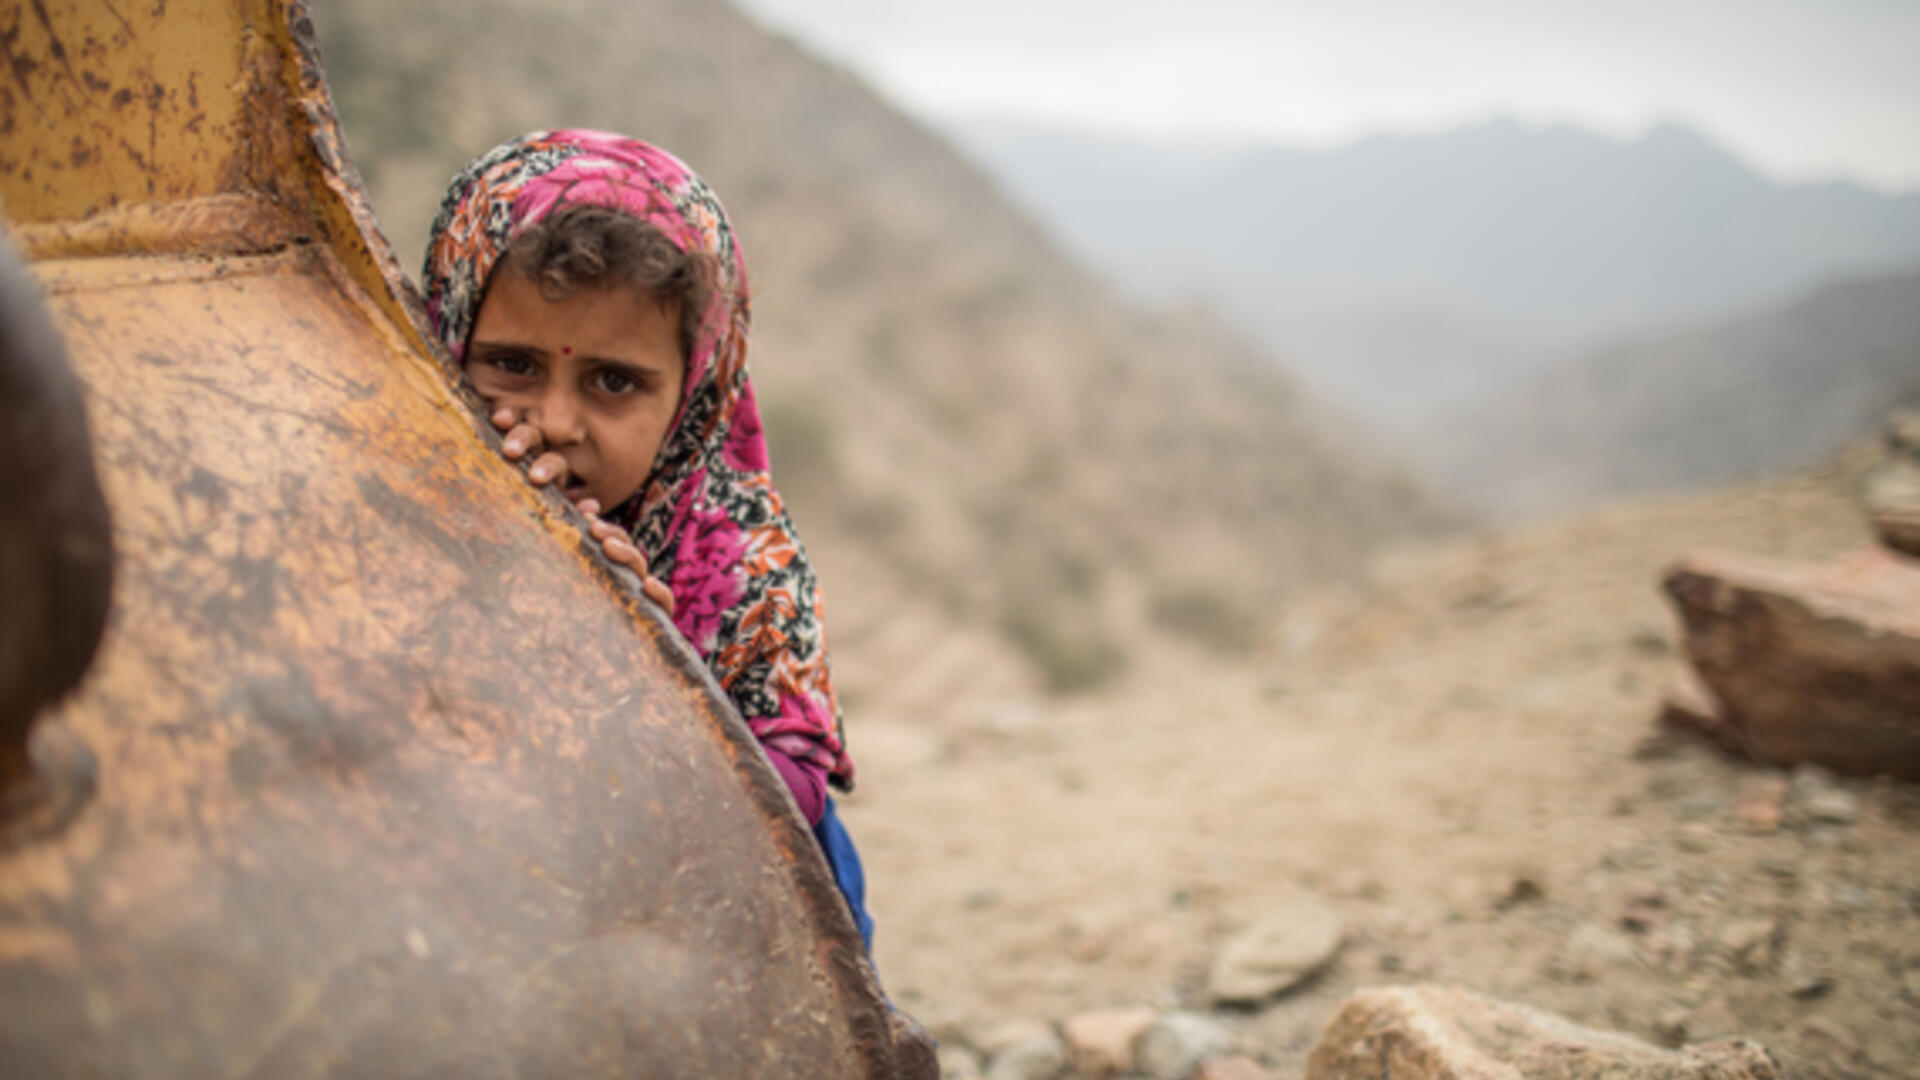 A young girl wearing a pink floral headscarf in a remote mountain area of Yemen